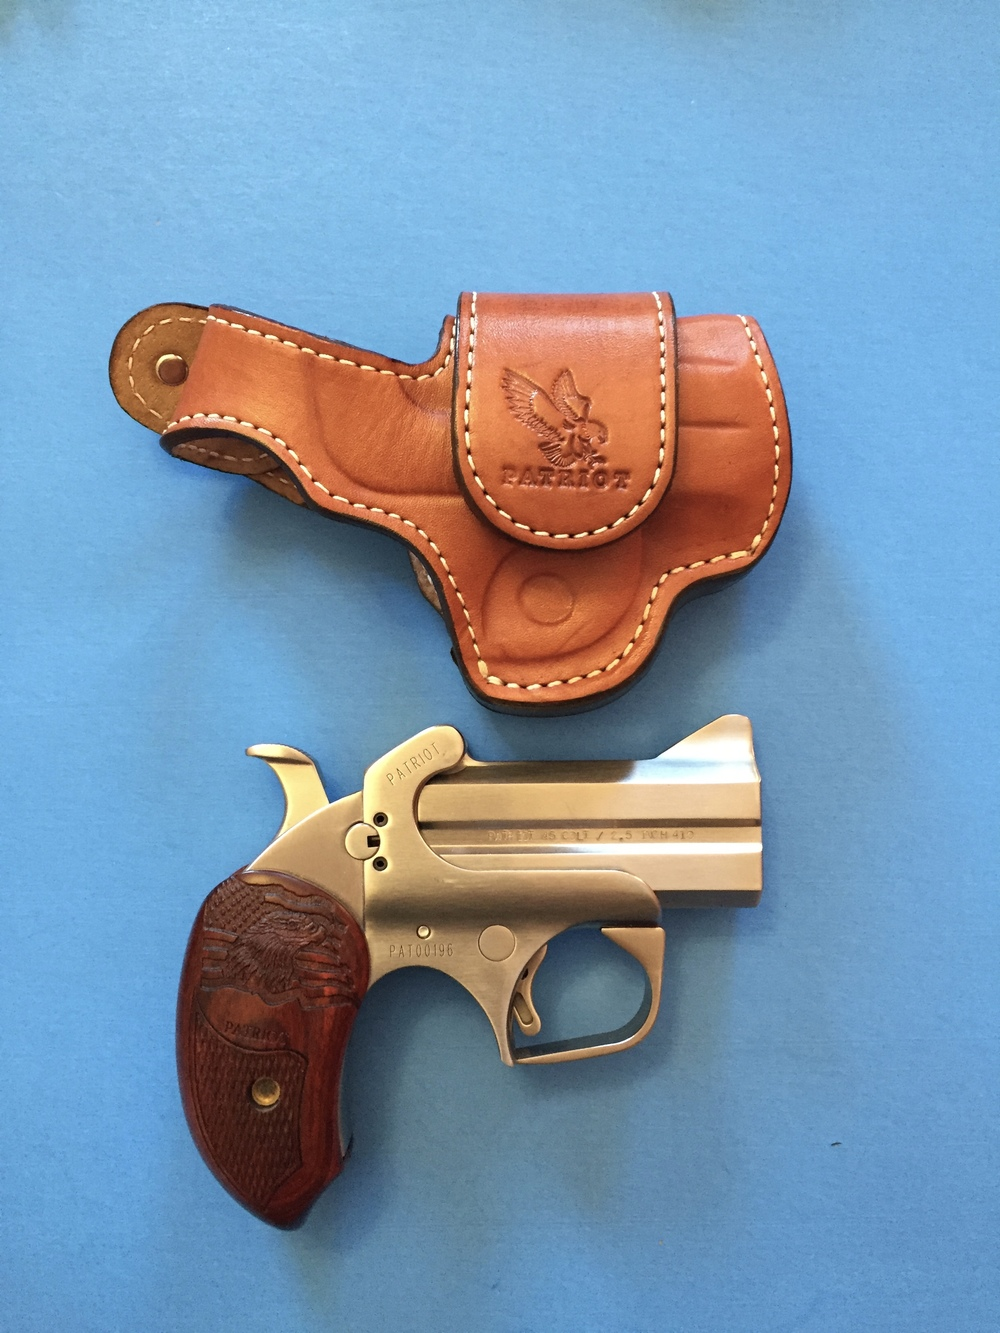 "Patriot with 3"" barrel and Bond Arms Driving Holster"